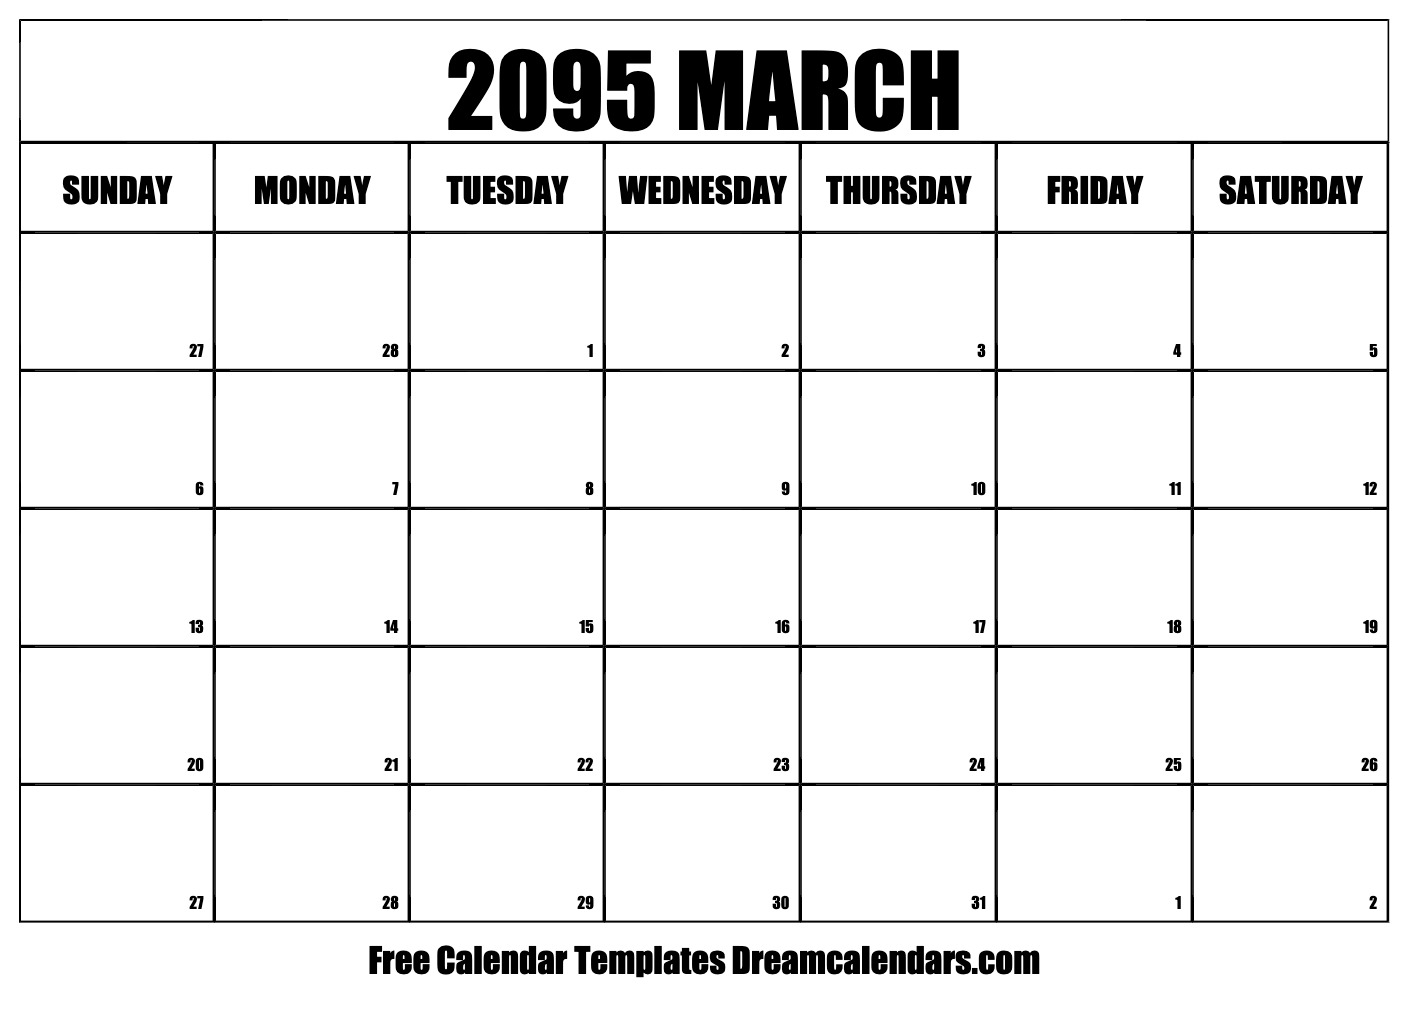 graphic regarding Free Printable March Calendar identify Printable March 2095 Calendar